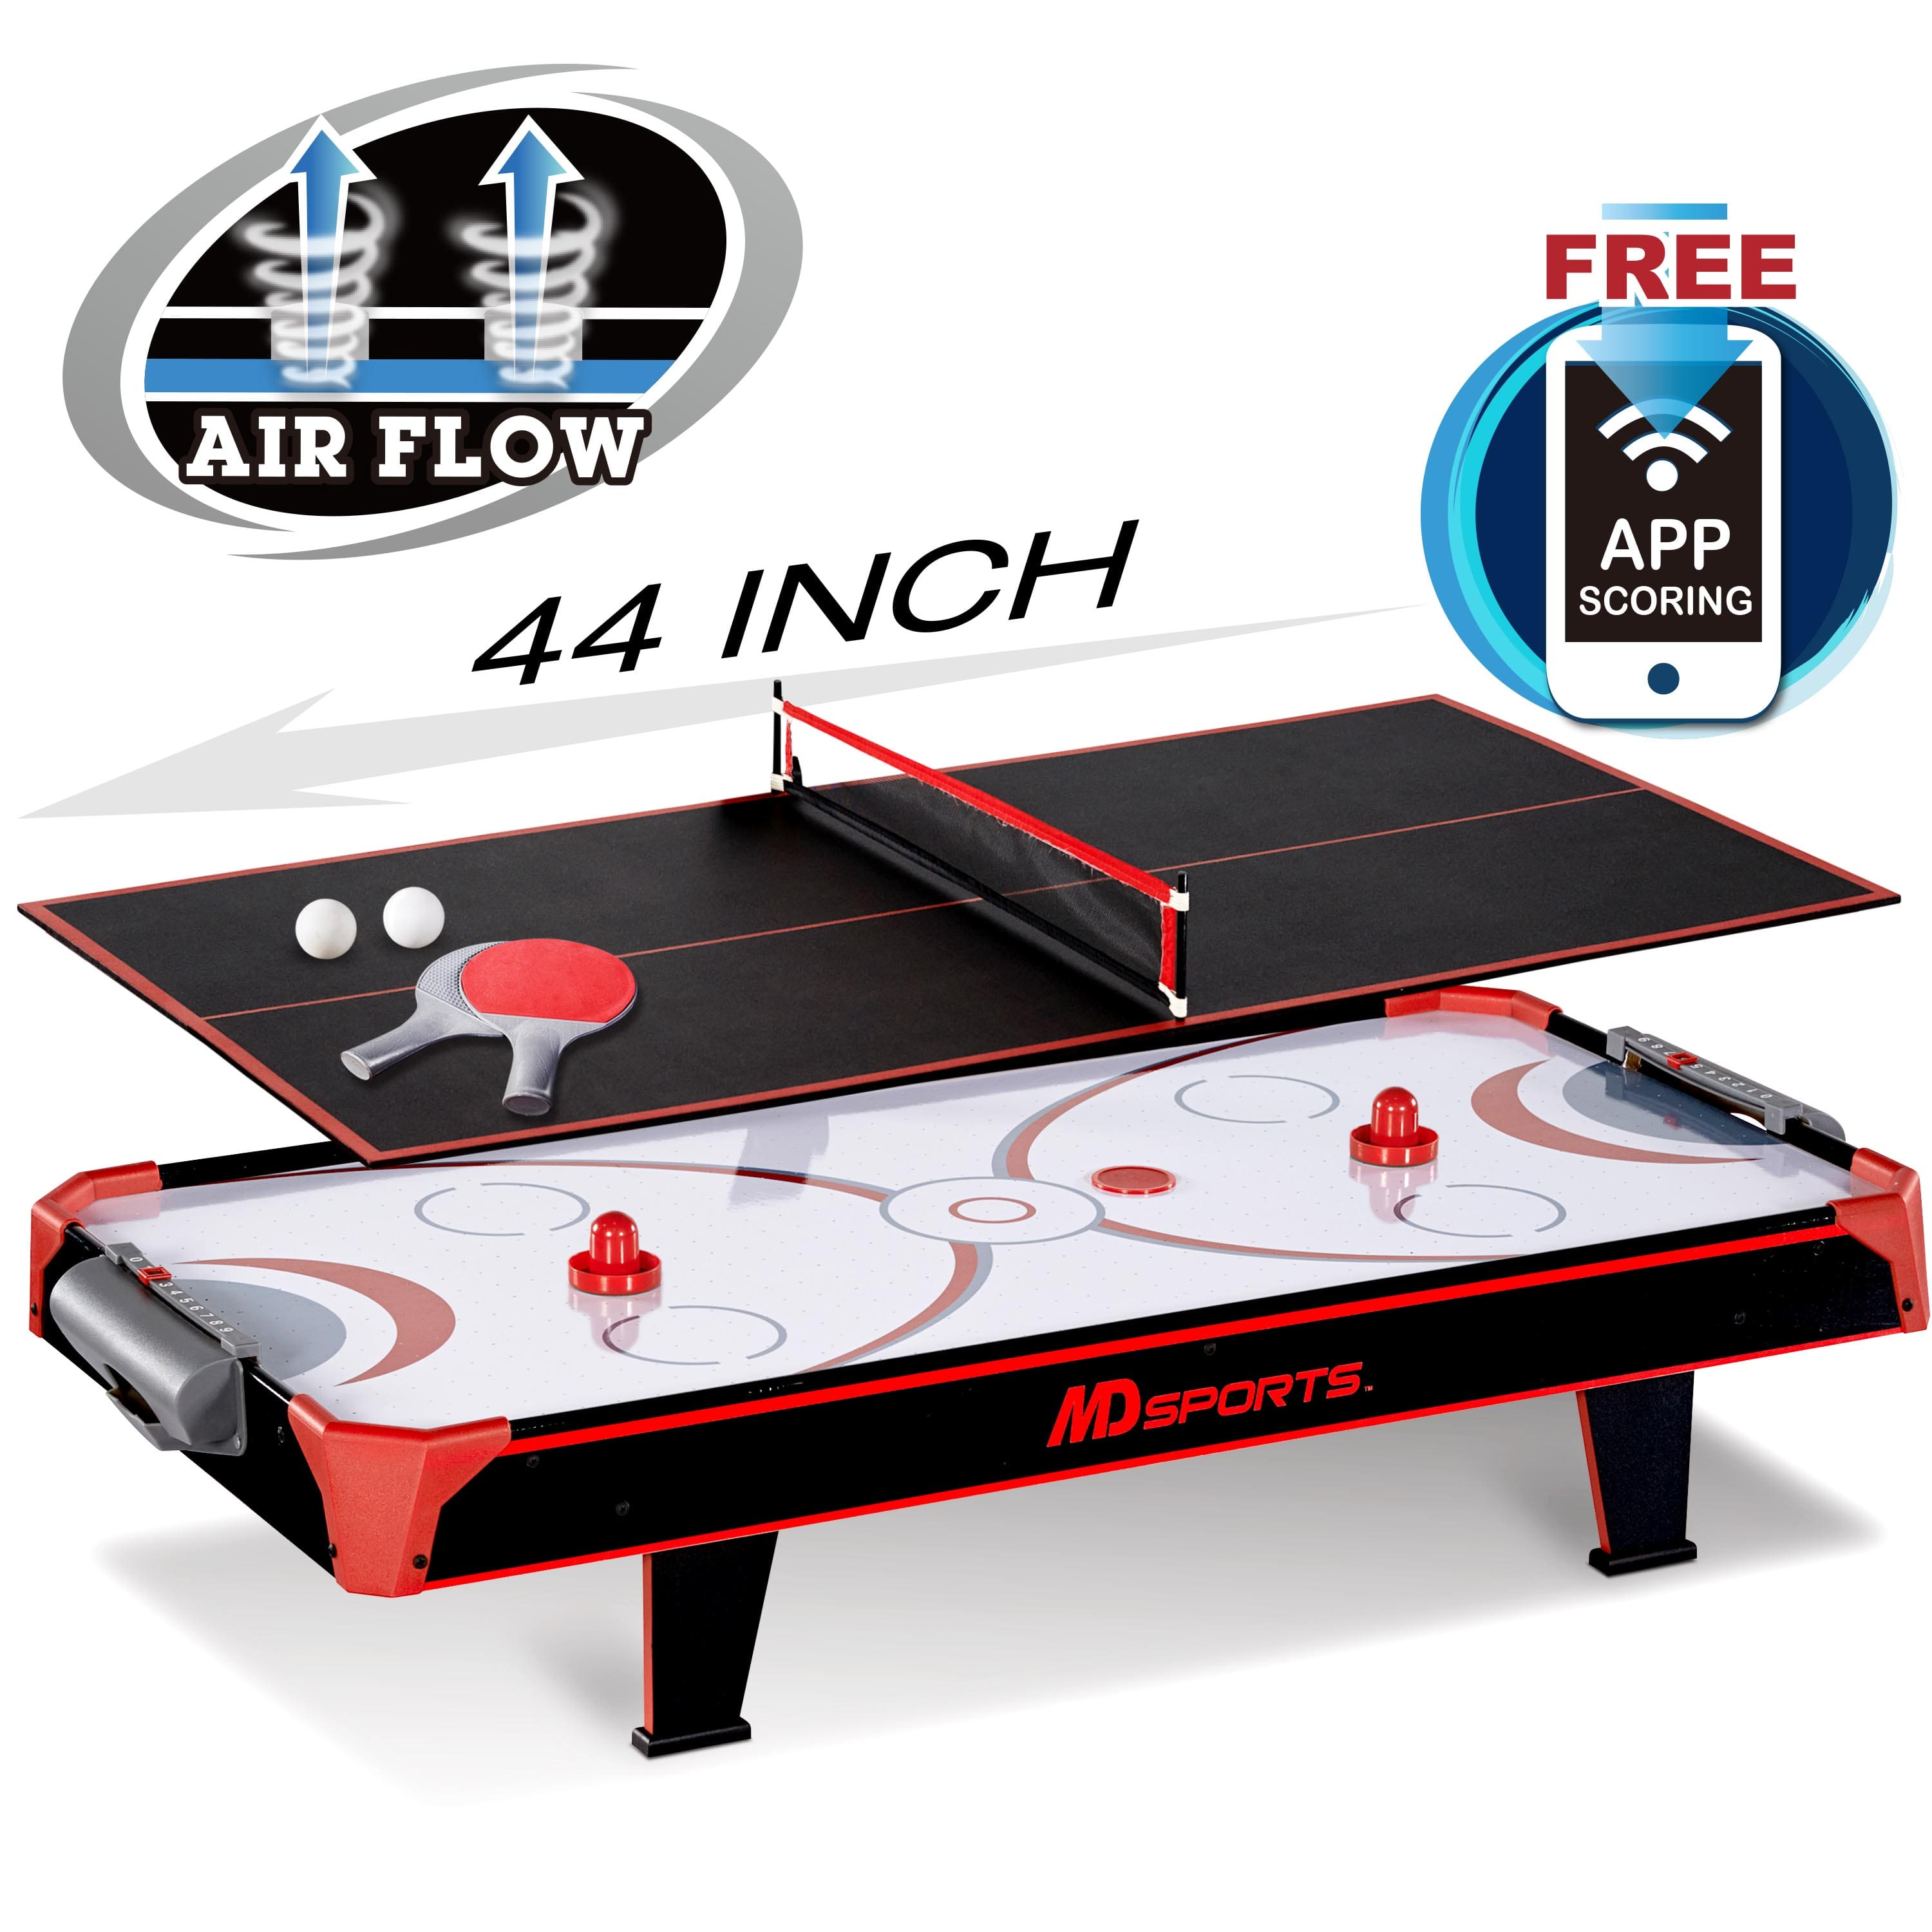 MD Sports 44 inch Air Powered Hockey Table Top with Table Tennis Top with APP Scorer $26.05